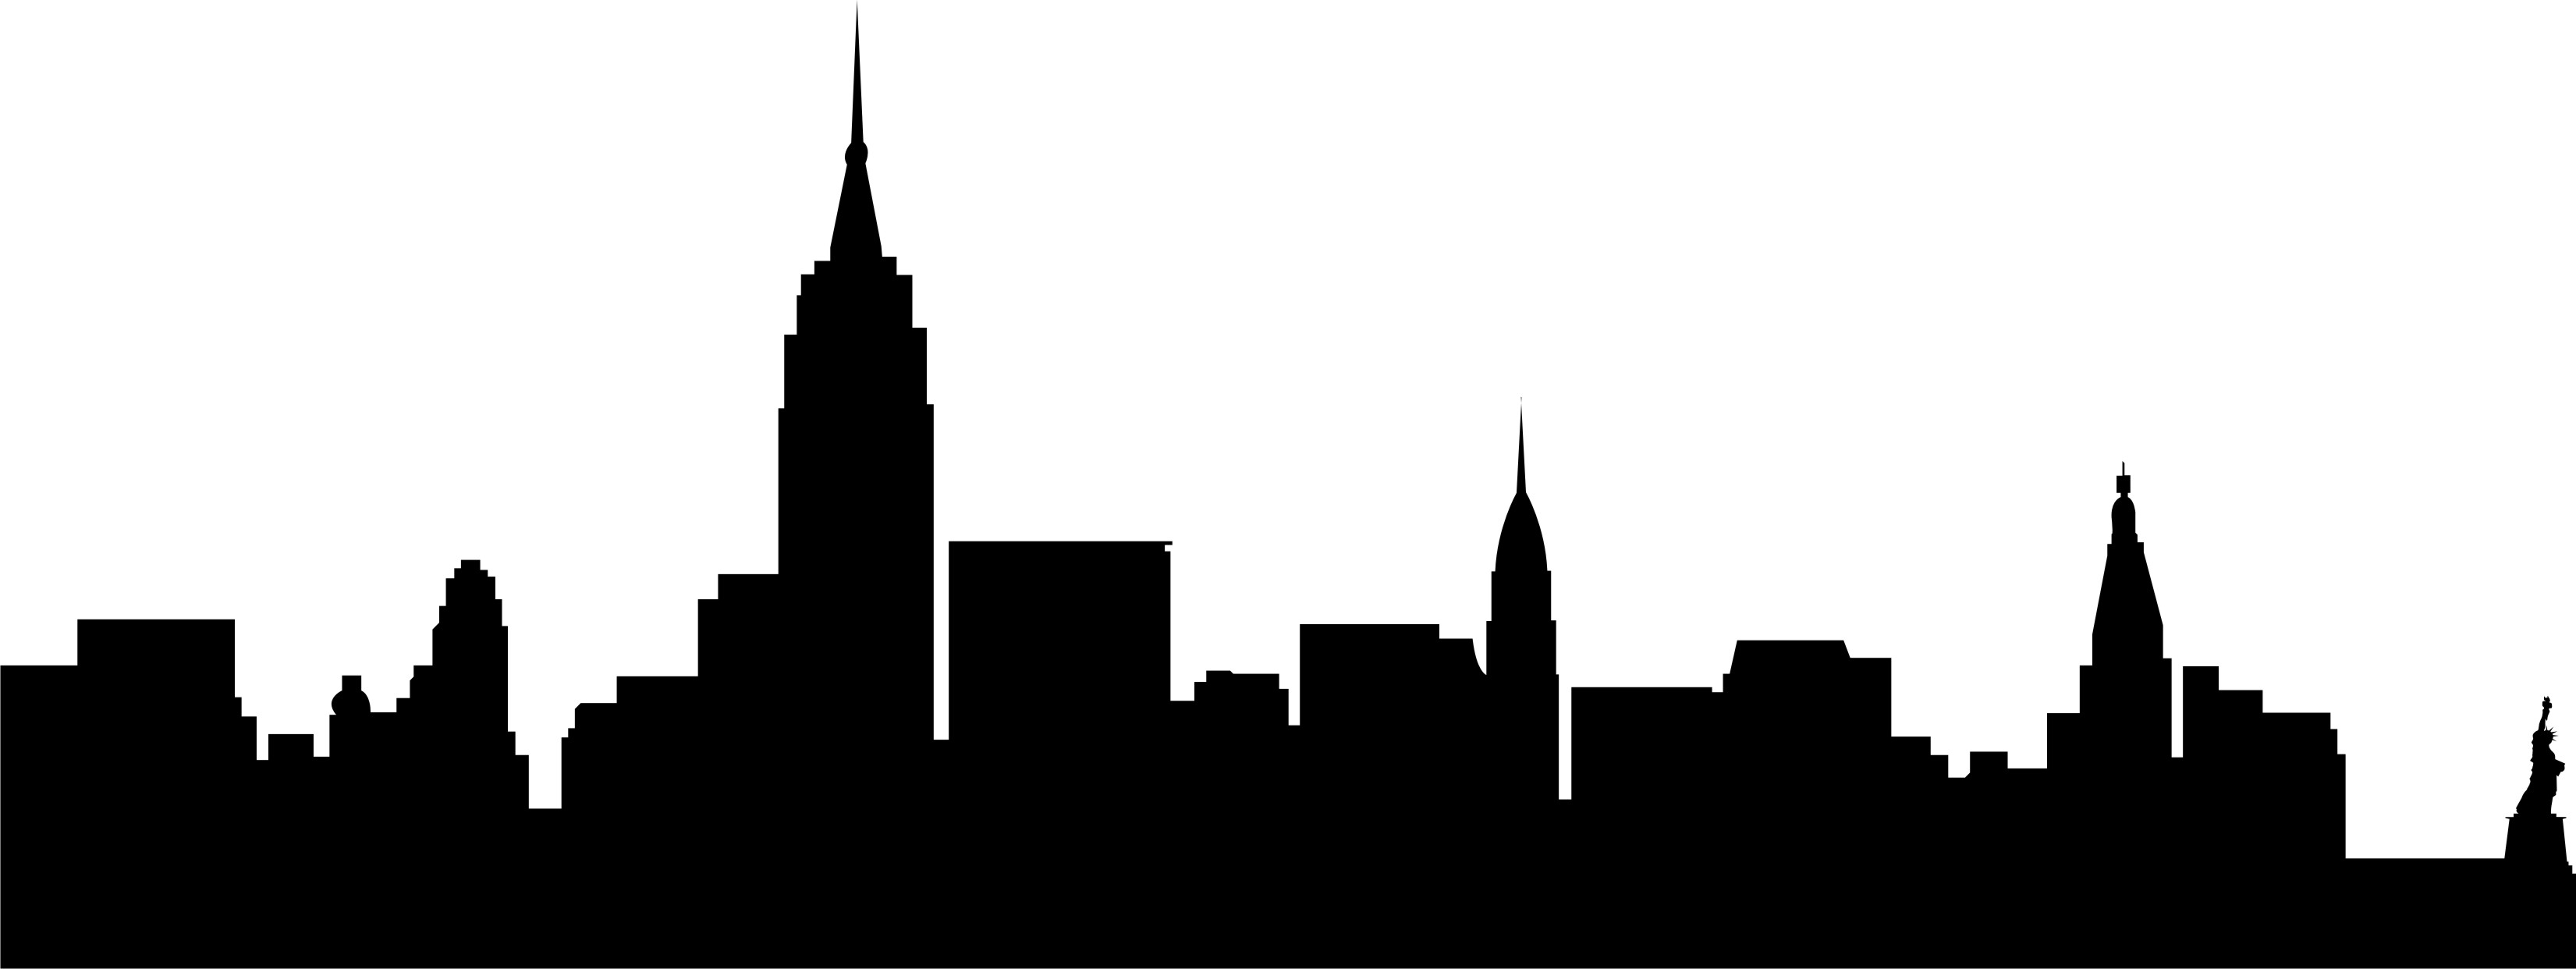 Skyline clipart #20, Download drawings